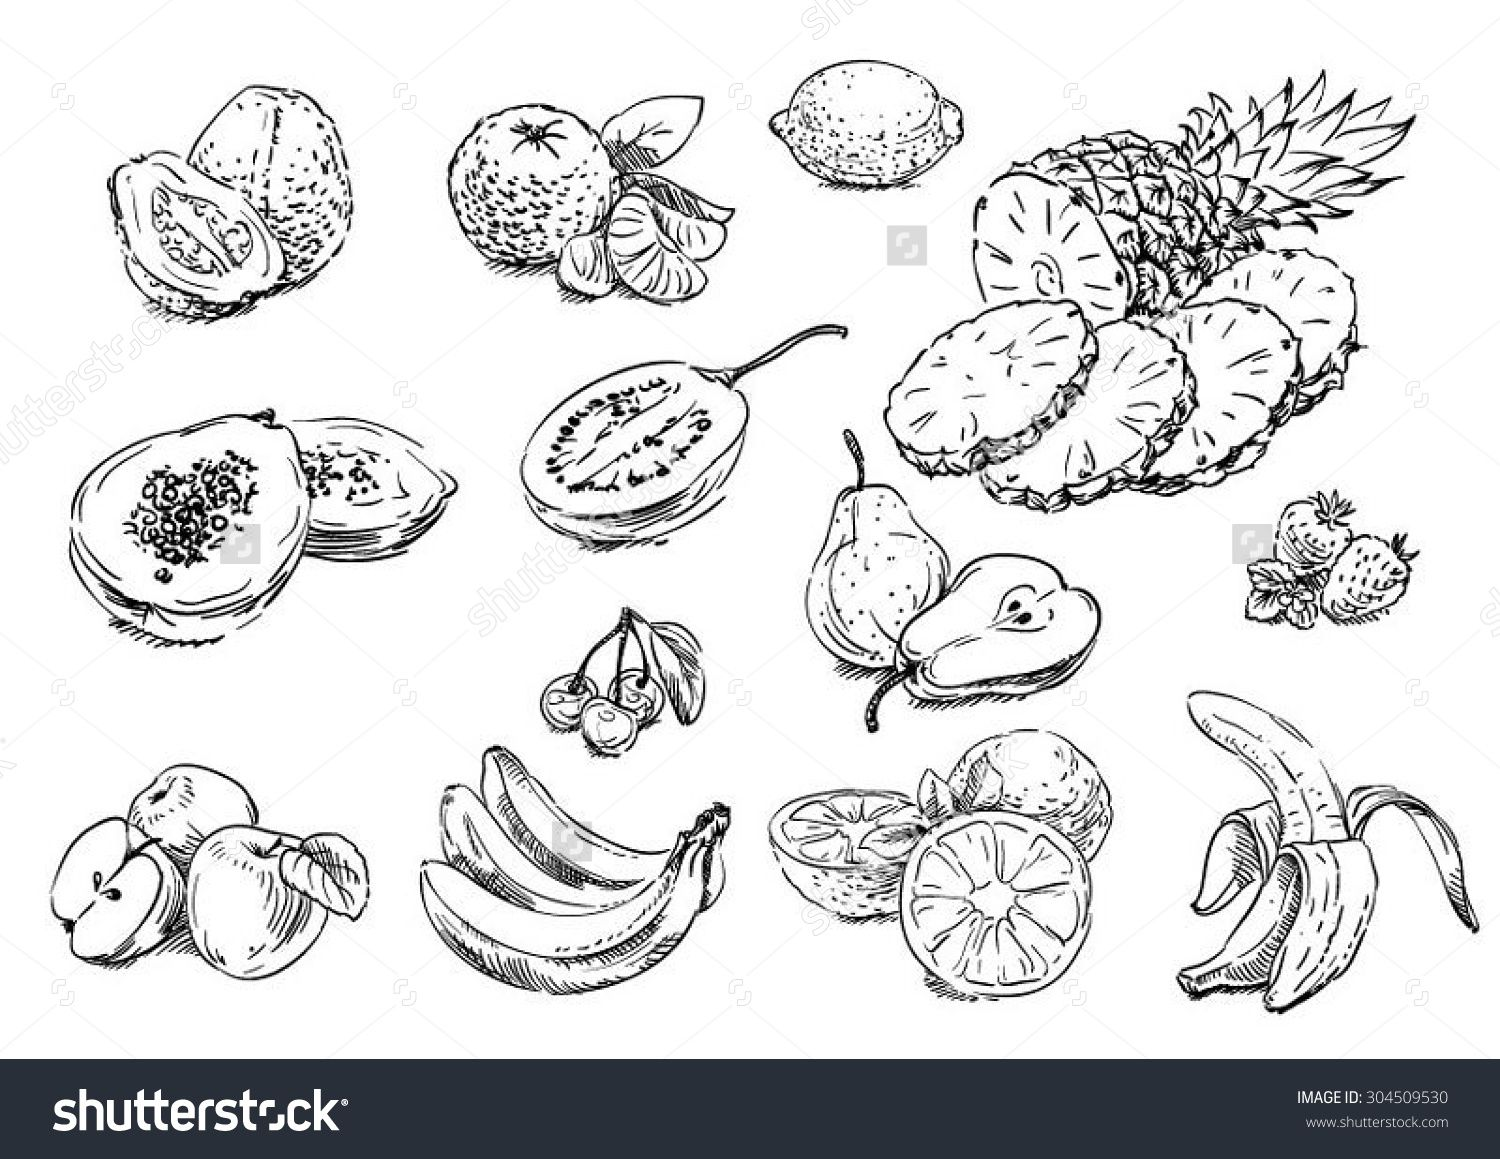 Sketches Of Food: Fruits Stock Vector Illustration 304509530 ...